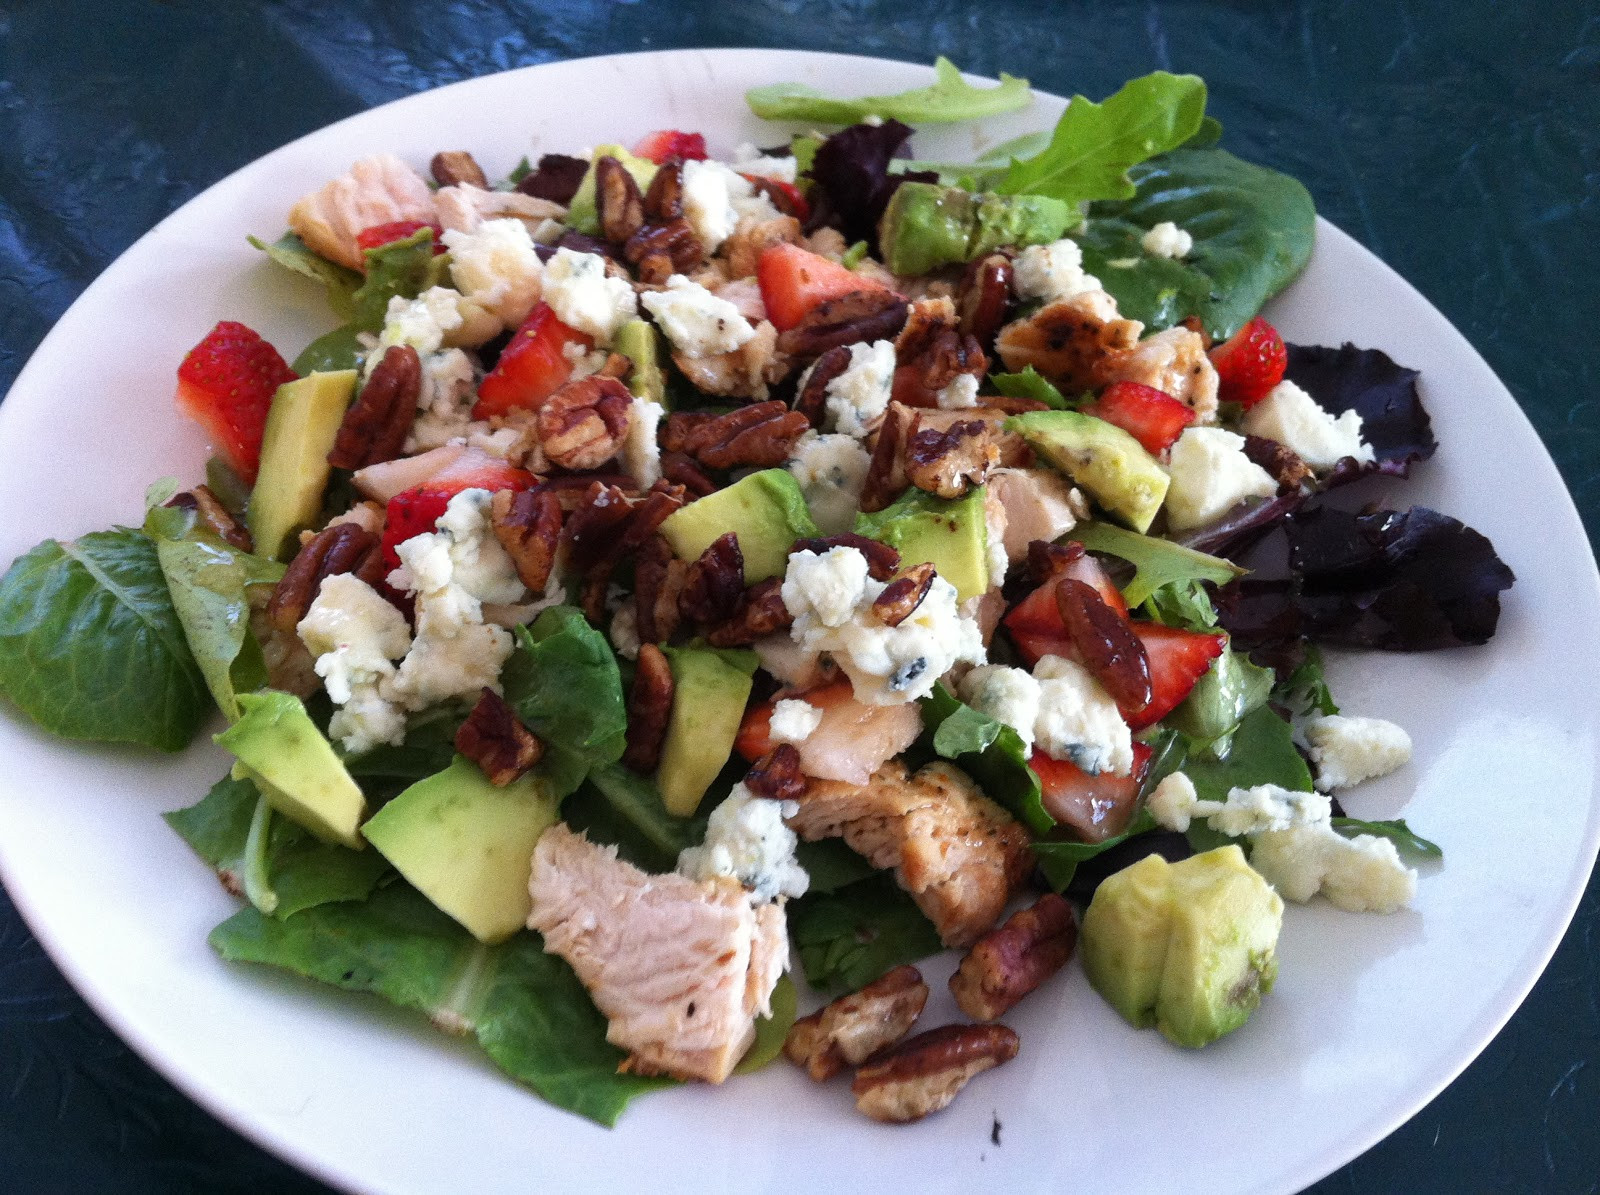 Strawberry Chicken Salad  Counting Up with P10 Strawberry Chicken Salad